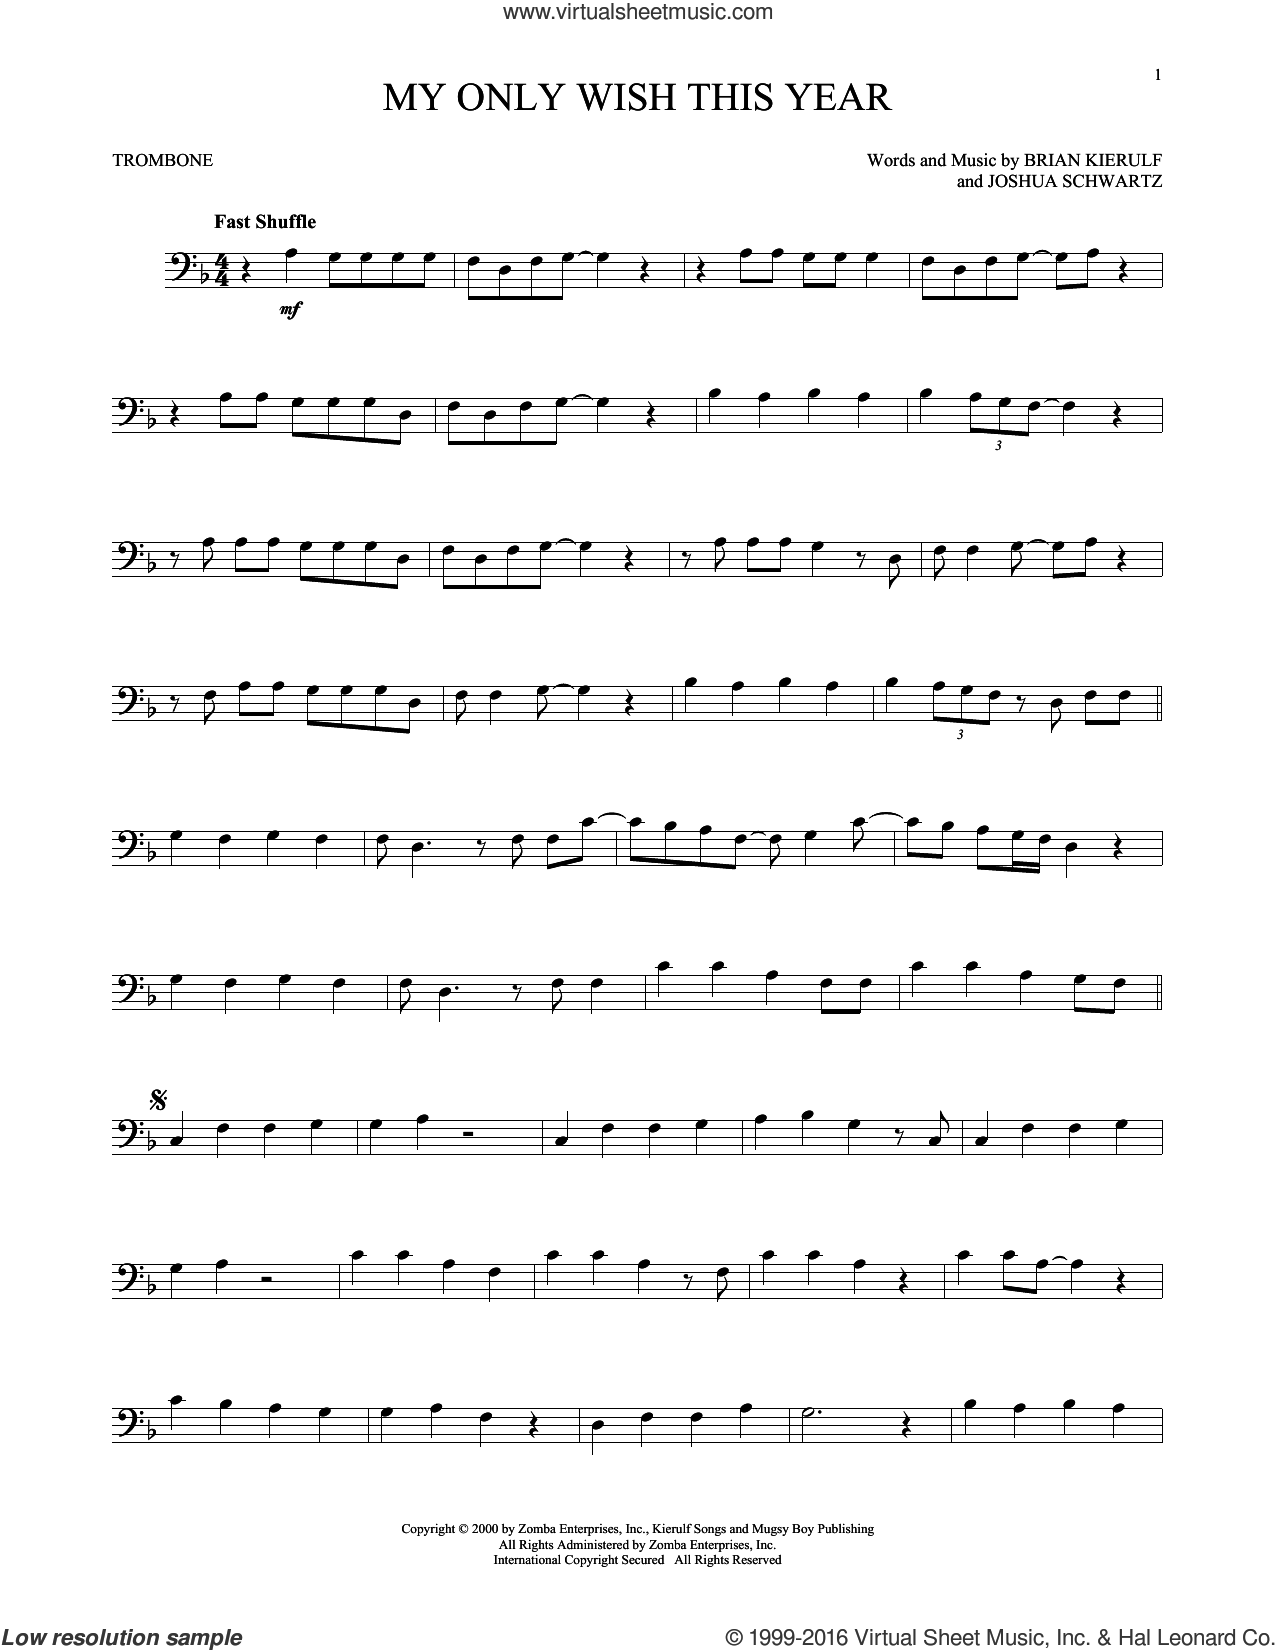 My Only Wish This Year sheet music for trombone solo by Britney Spears, Brian Kierulf and Joshua Schwartz, intermediate skill level